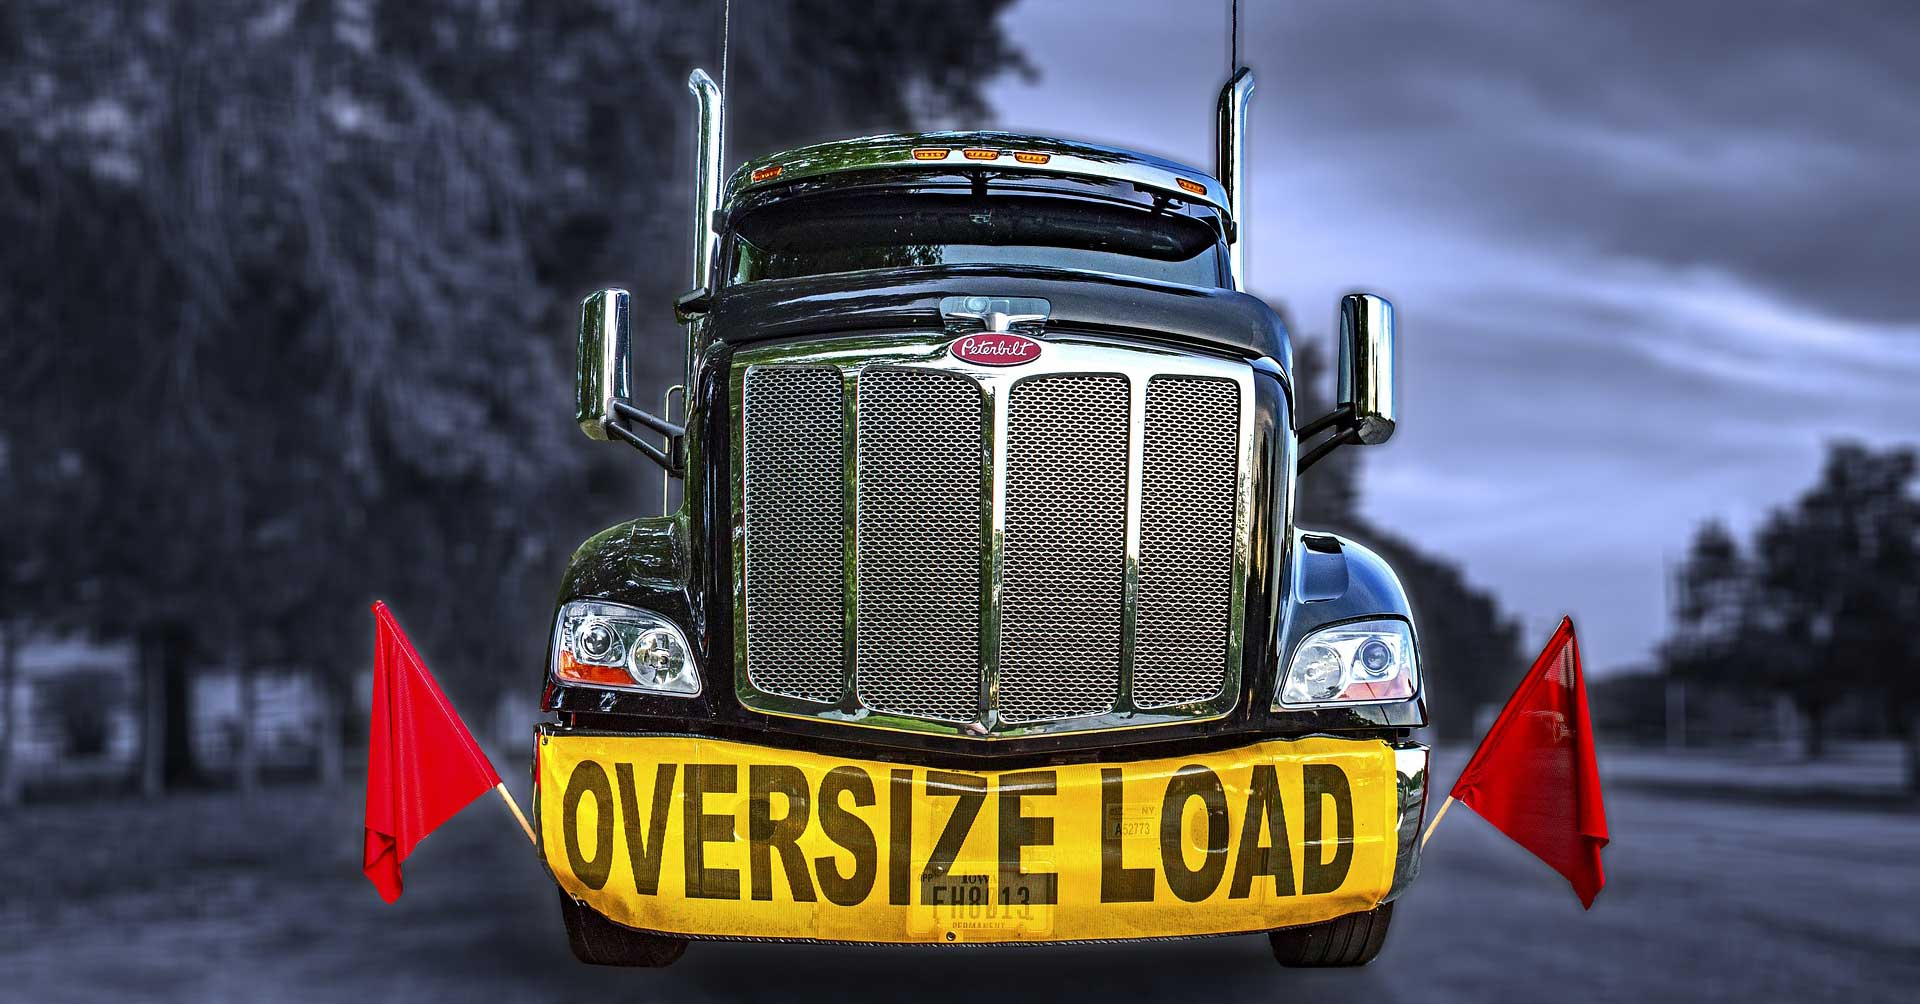 Charlotte Mobile Truck Repair: 5 Truck Services Red Rover Can Provide